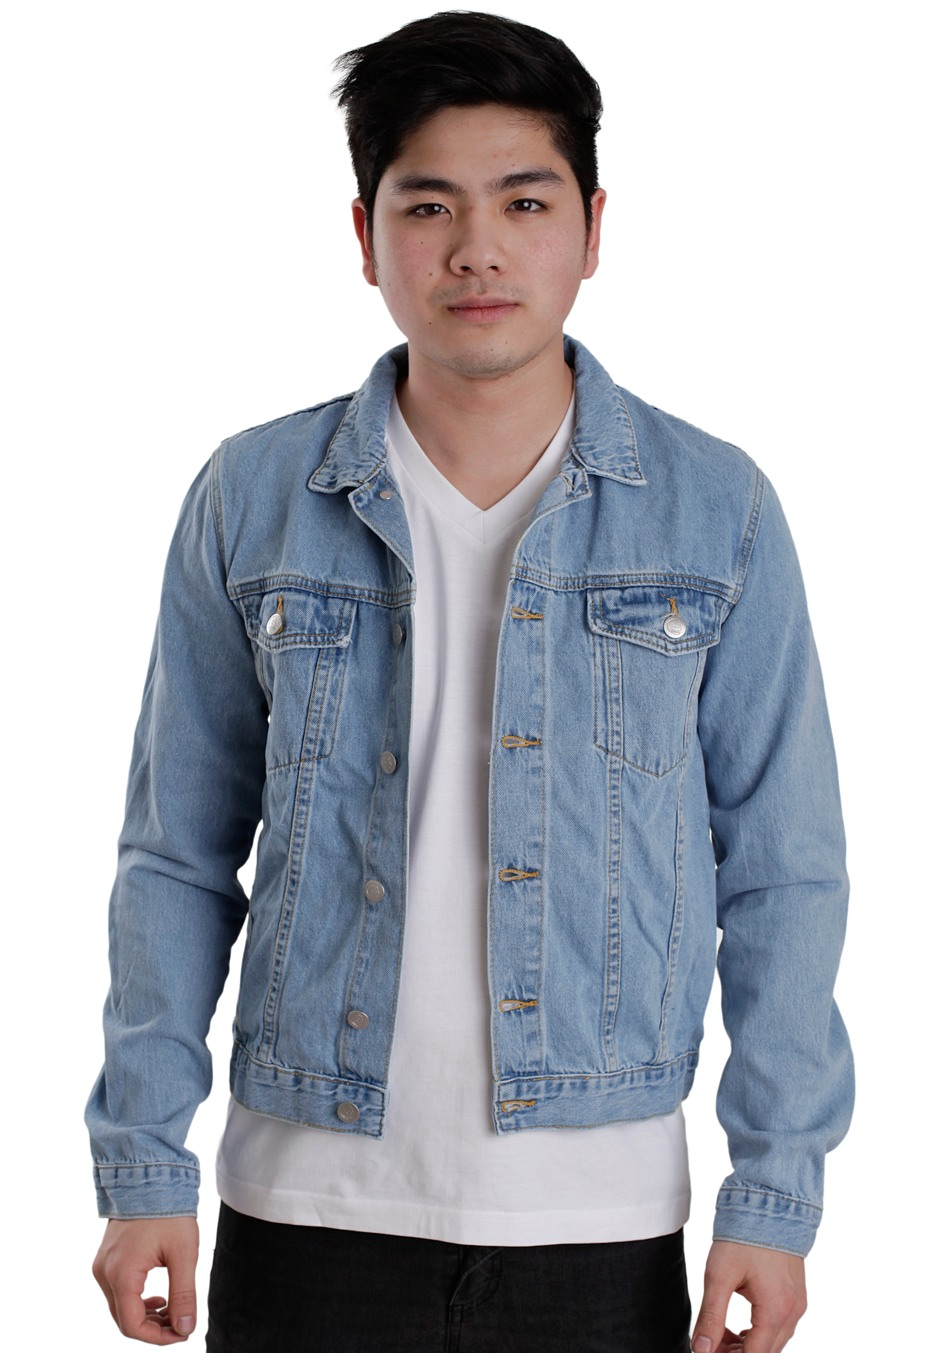 Jeans Jacket Photo Album - Get Your Fashion Style